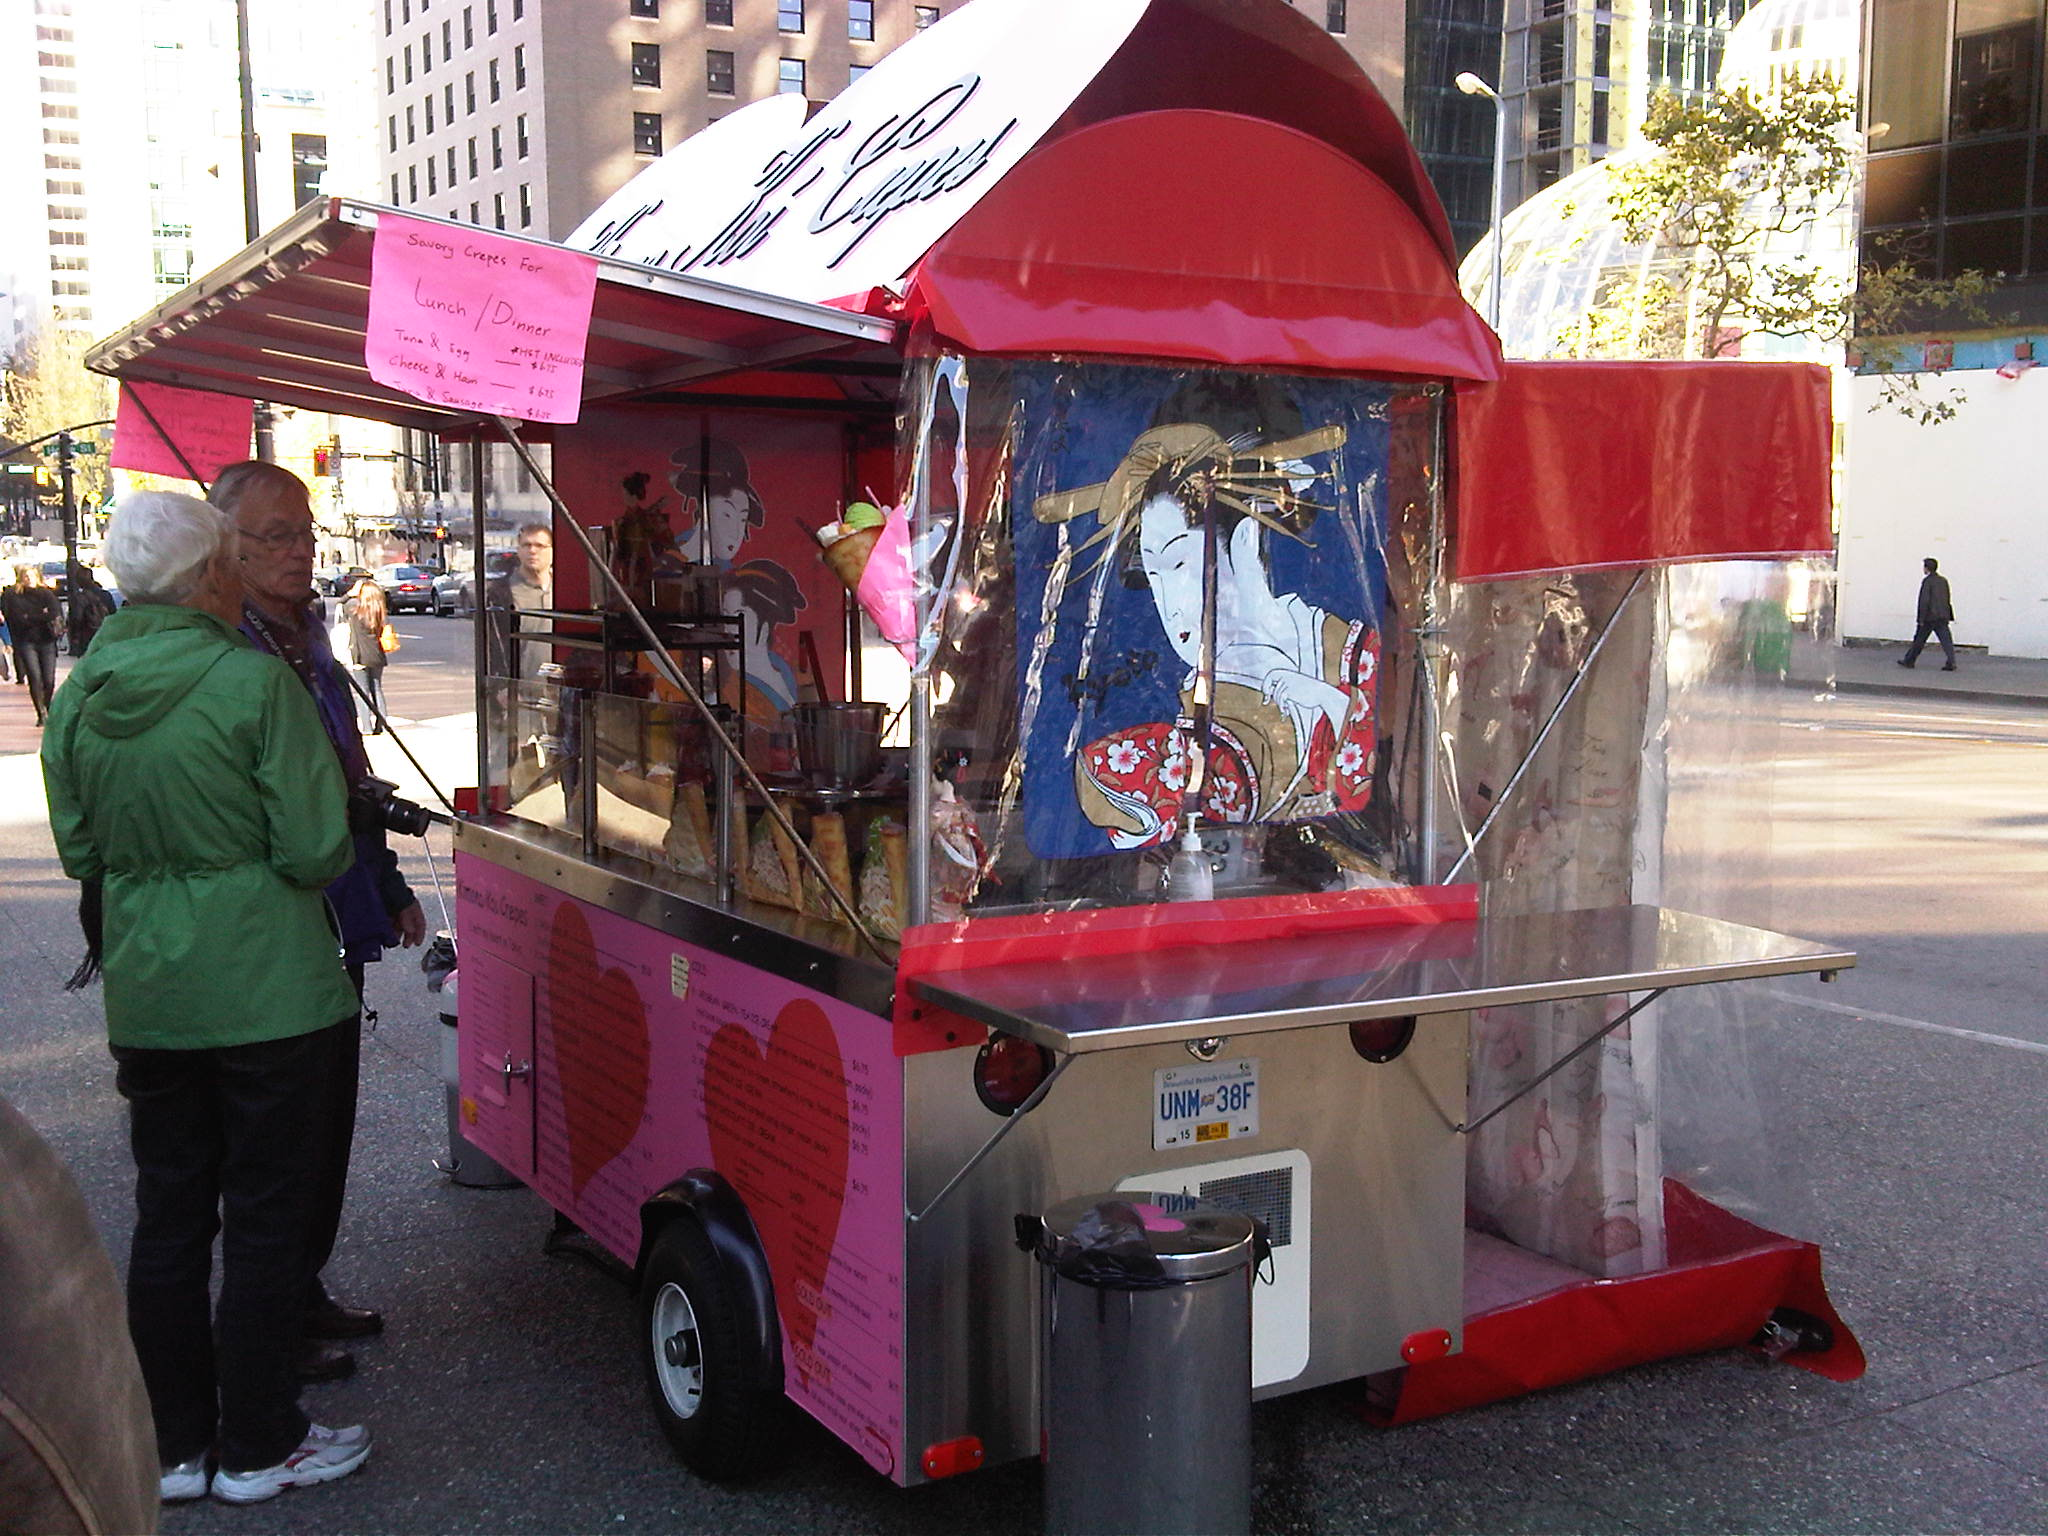 Crepe Food Carts http://foodpunk.ca/2010/11/14/kimono-koi-crepes-food-cart-pretty-in-pink/